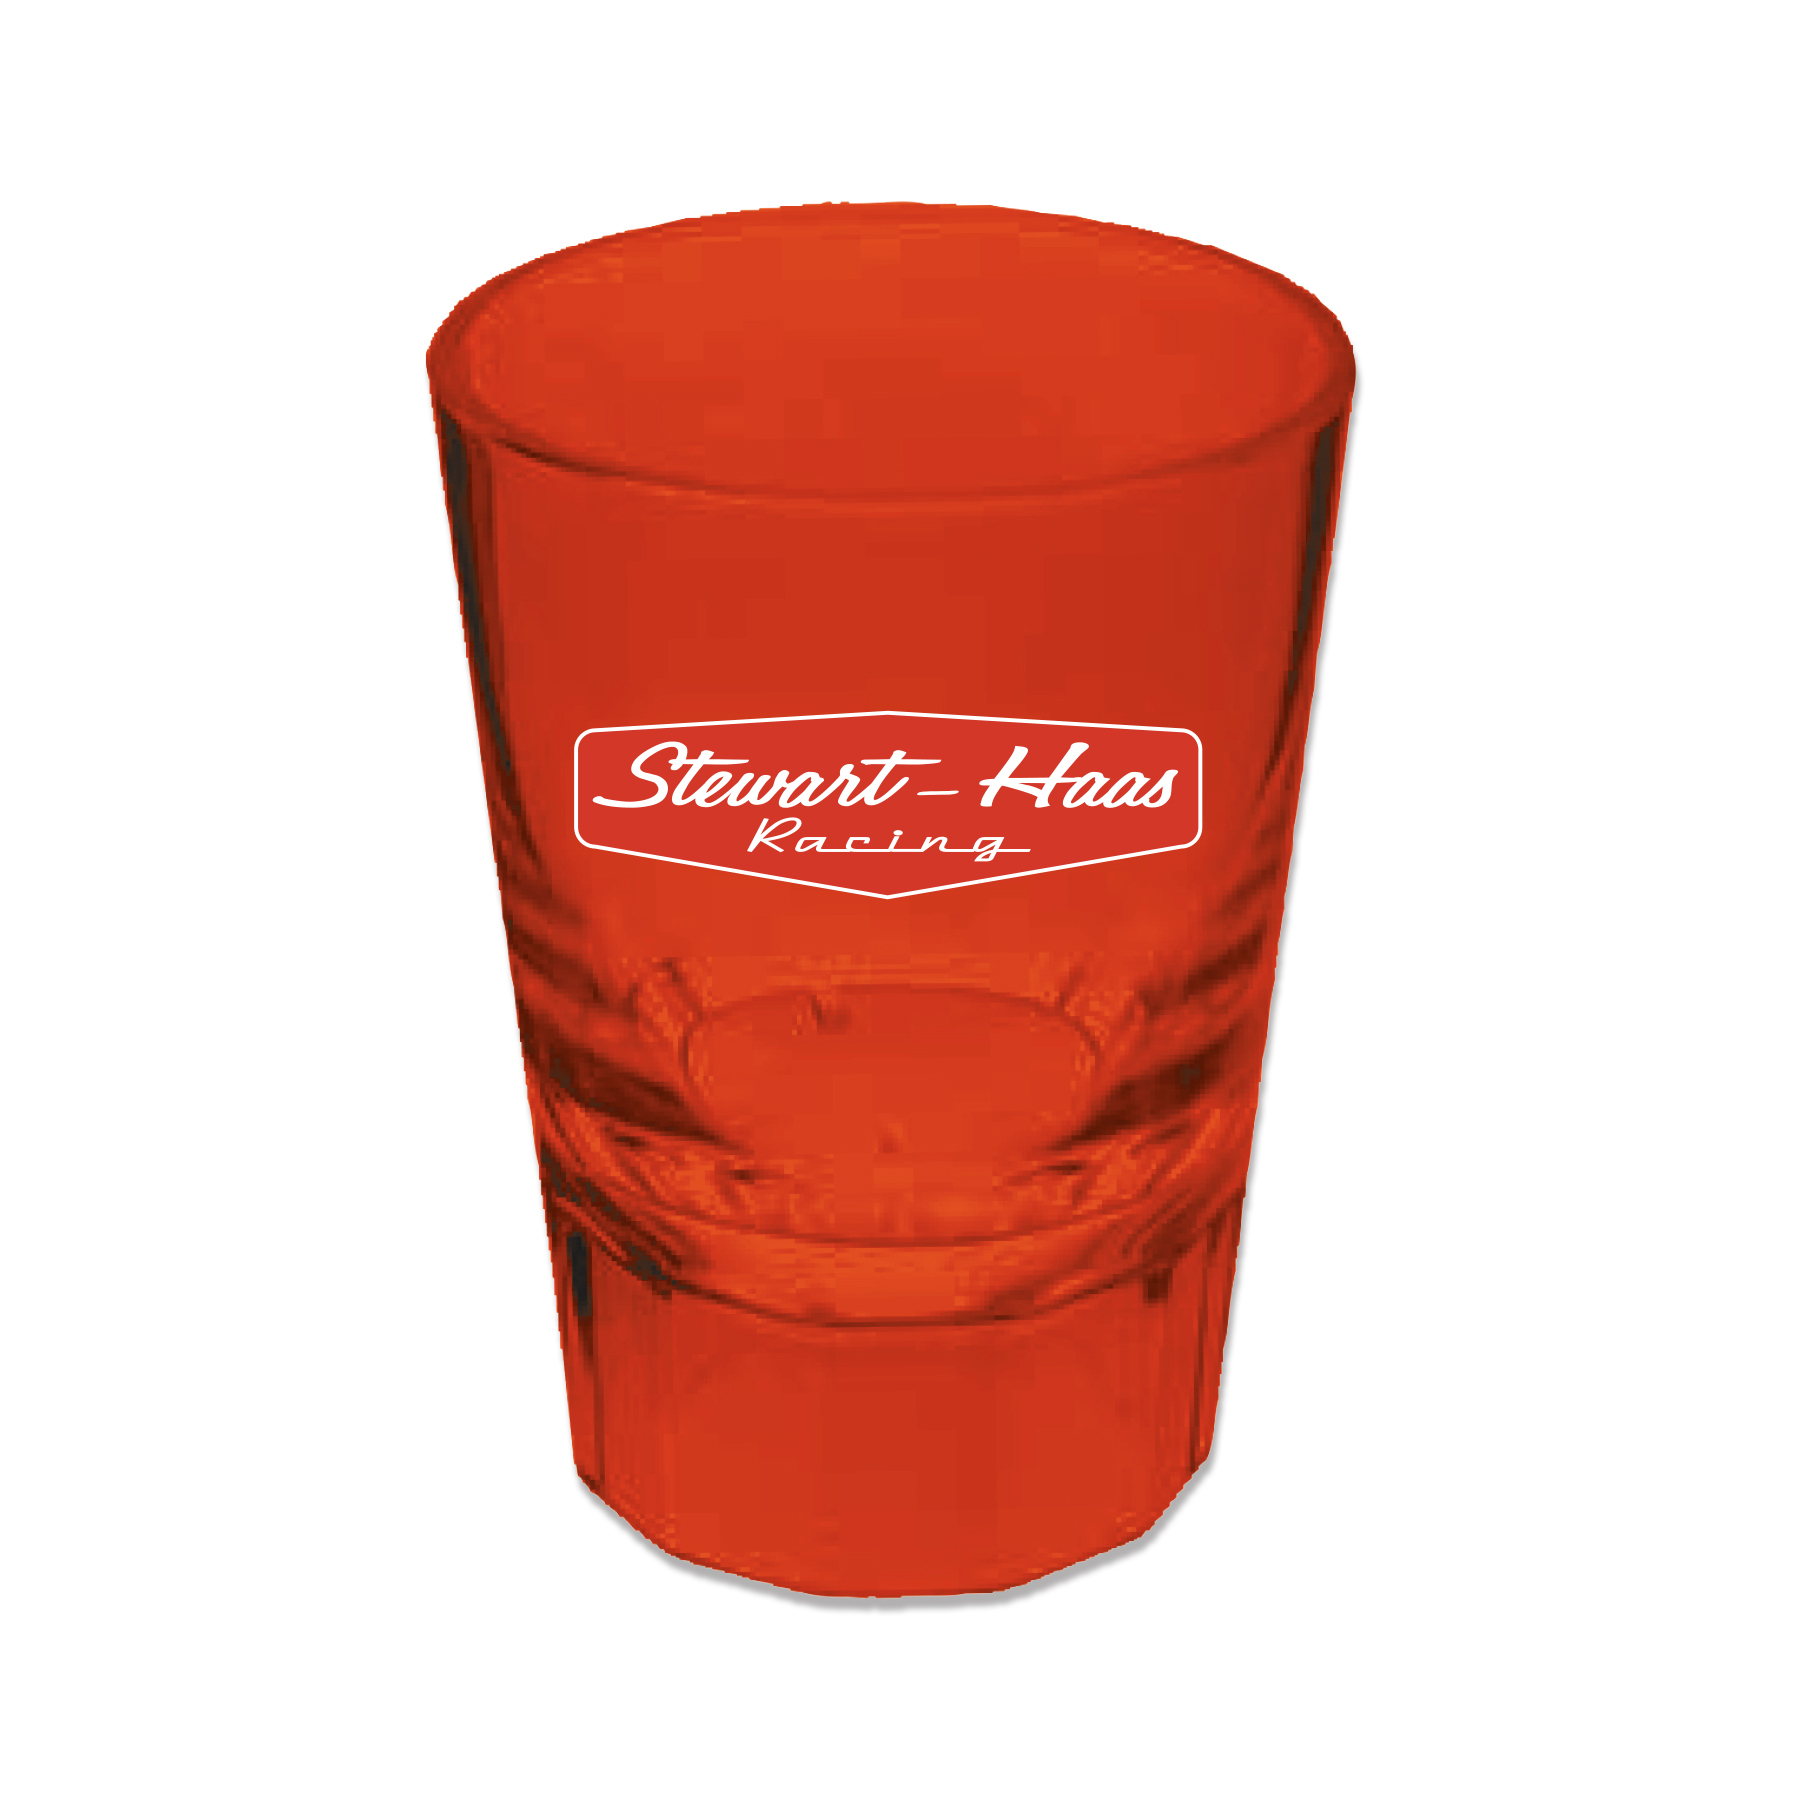 Exclusive Stewart-Haas Racing Red Acrylic 2oz Shot Glass